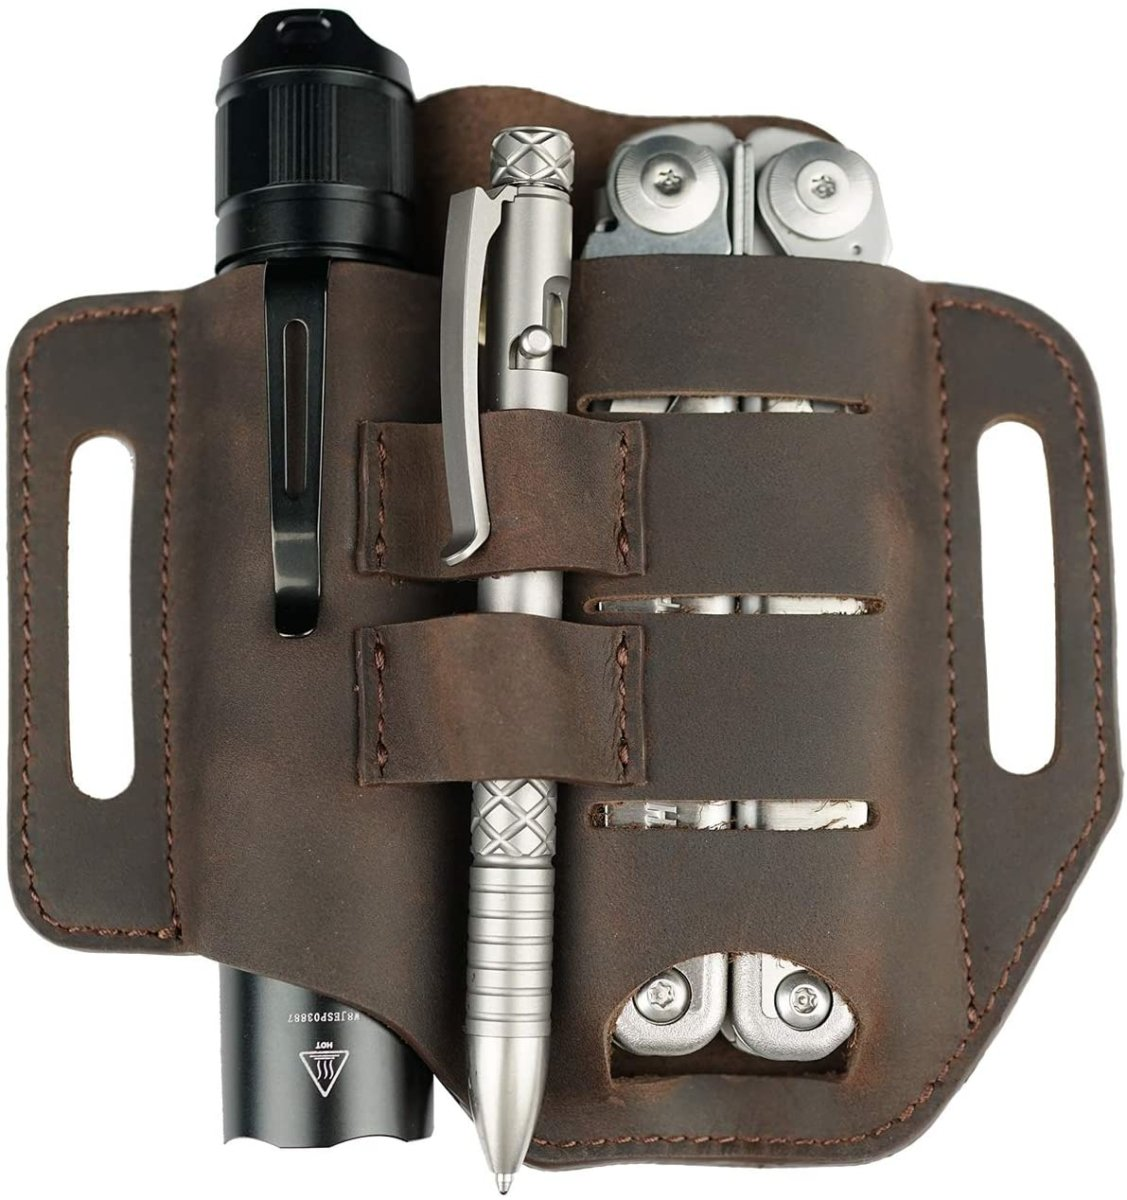 CraftsmanCapitol™ Premium Leather Sheath Tool Holder - Craftsman Capitol